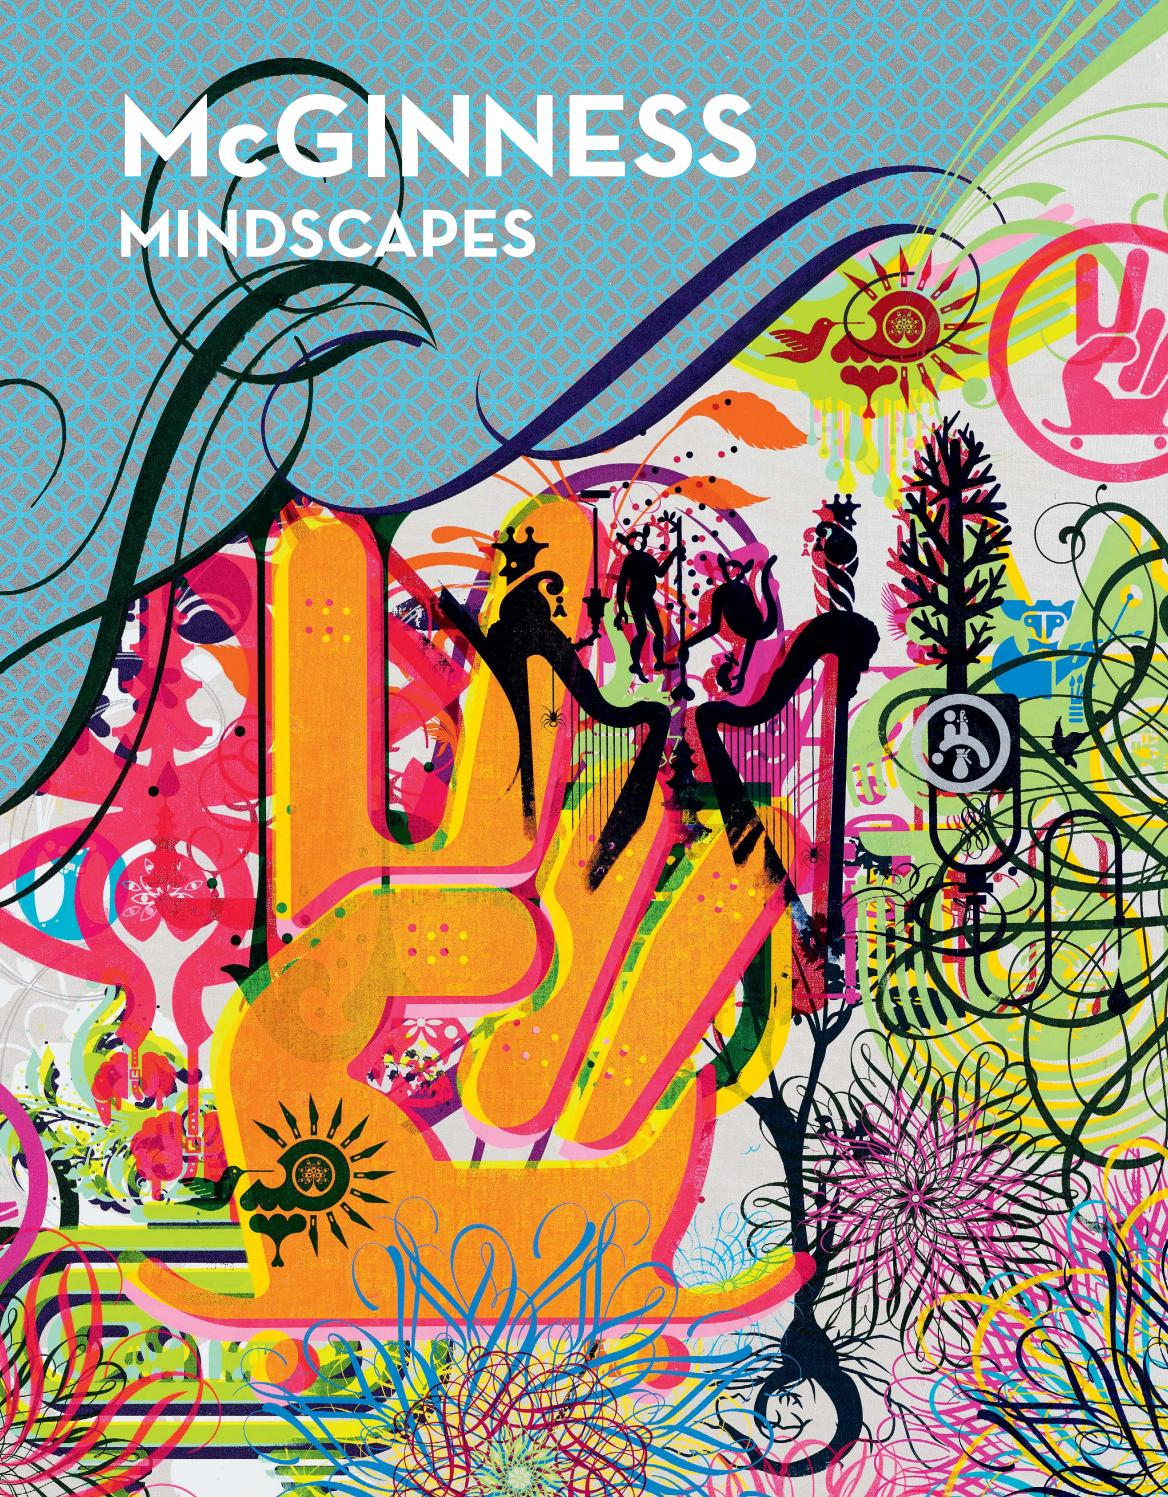 Ryan Mcginness Mindscapes By Miles Mcenery Gallery Issuu We play this crossword everyday and when we finish it we publish the answers on this website so that you can find an answer if you get stuck. ryan mcginness mindscapes by miles